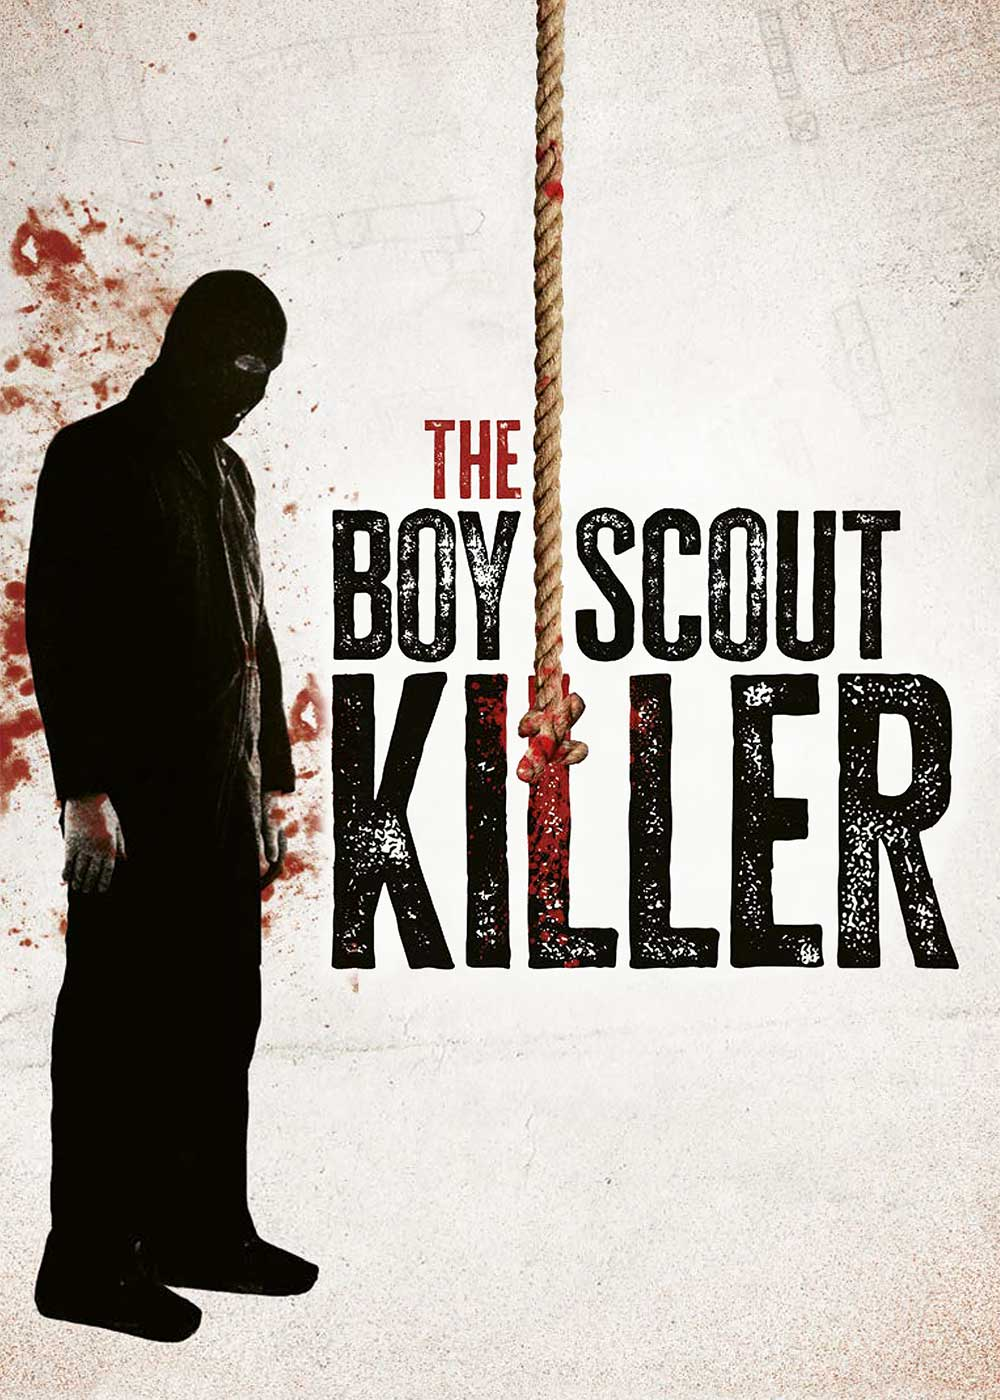 The Boy Scout Killer [Elektronisk resurs] / regi: Duncan Skiles.